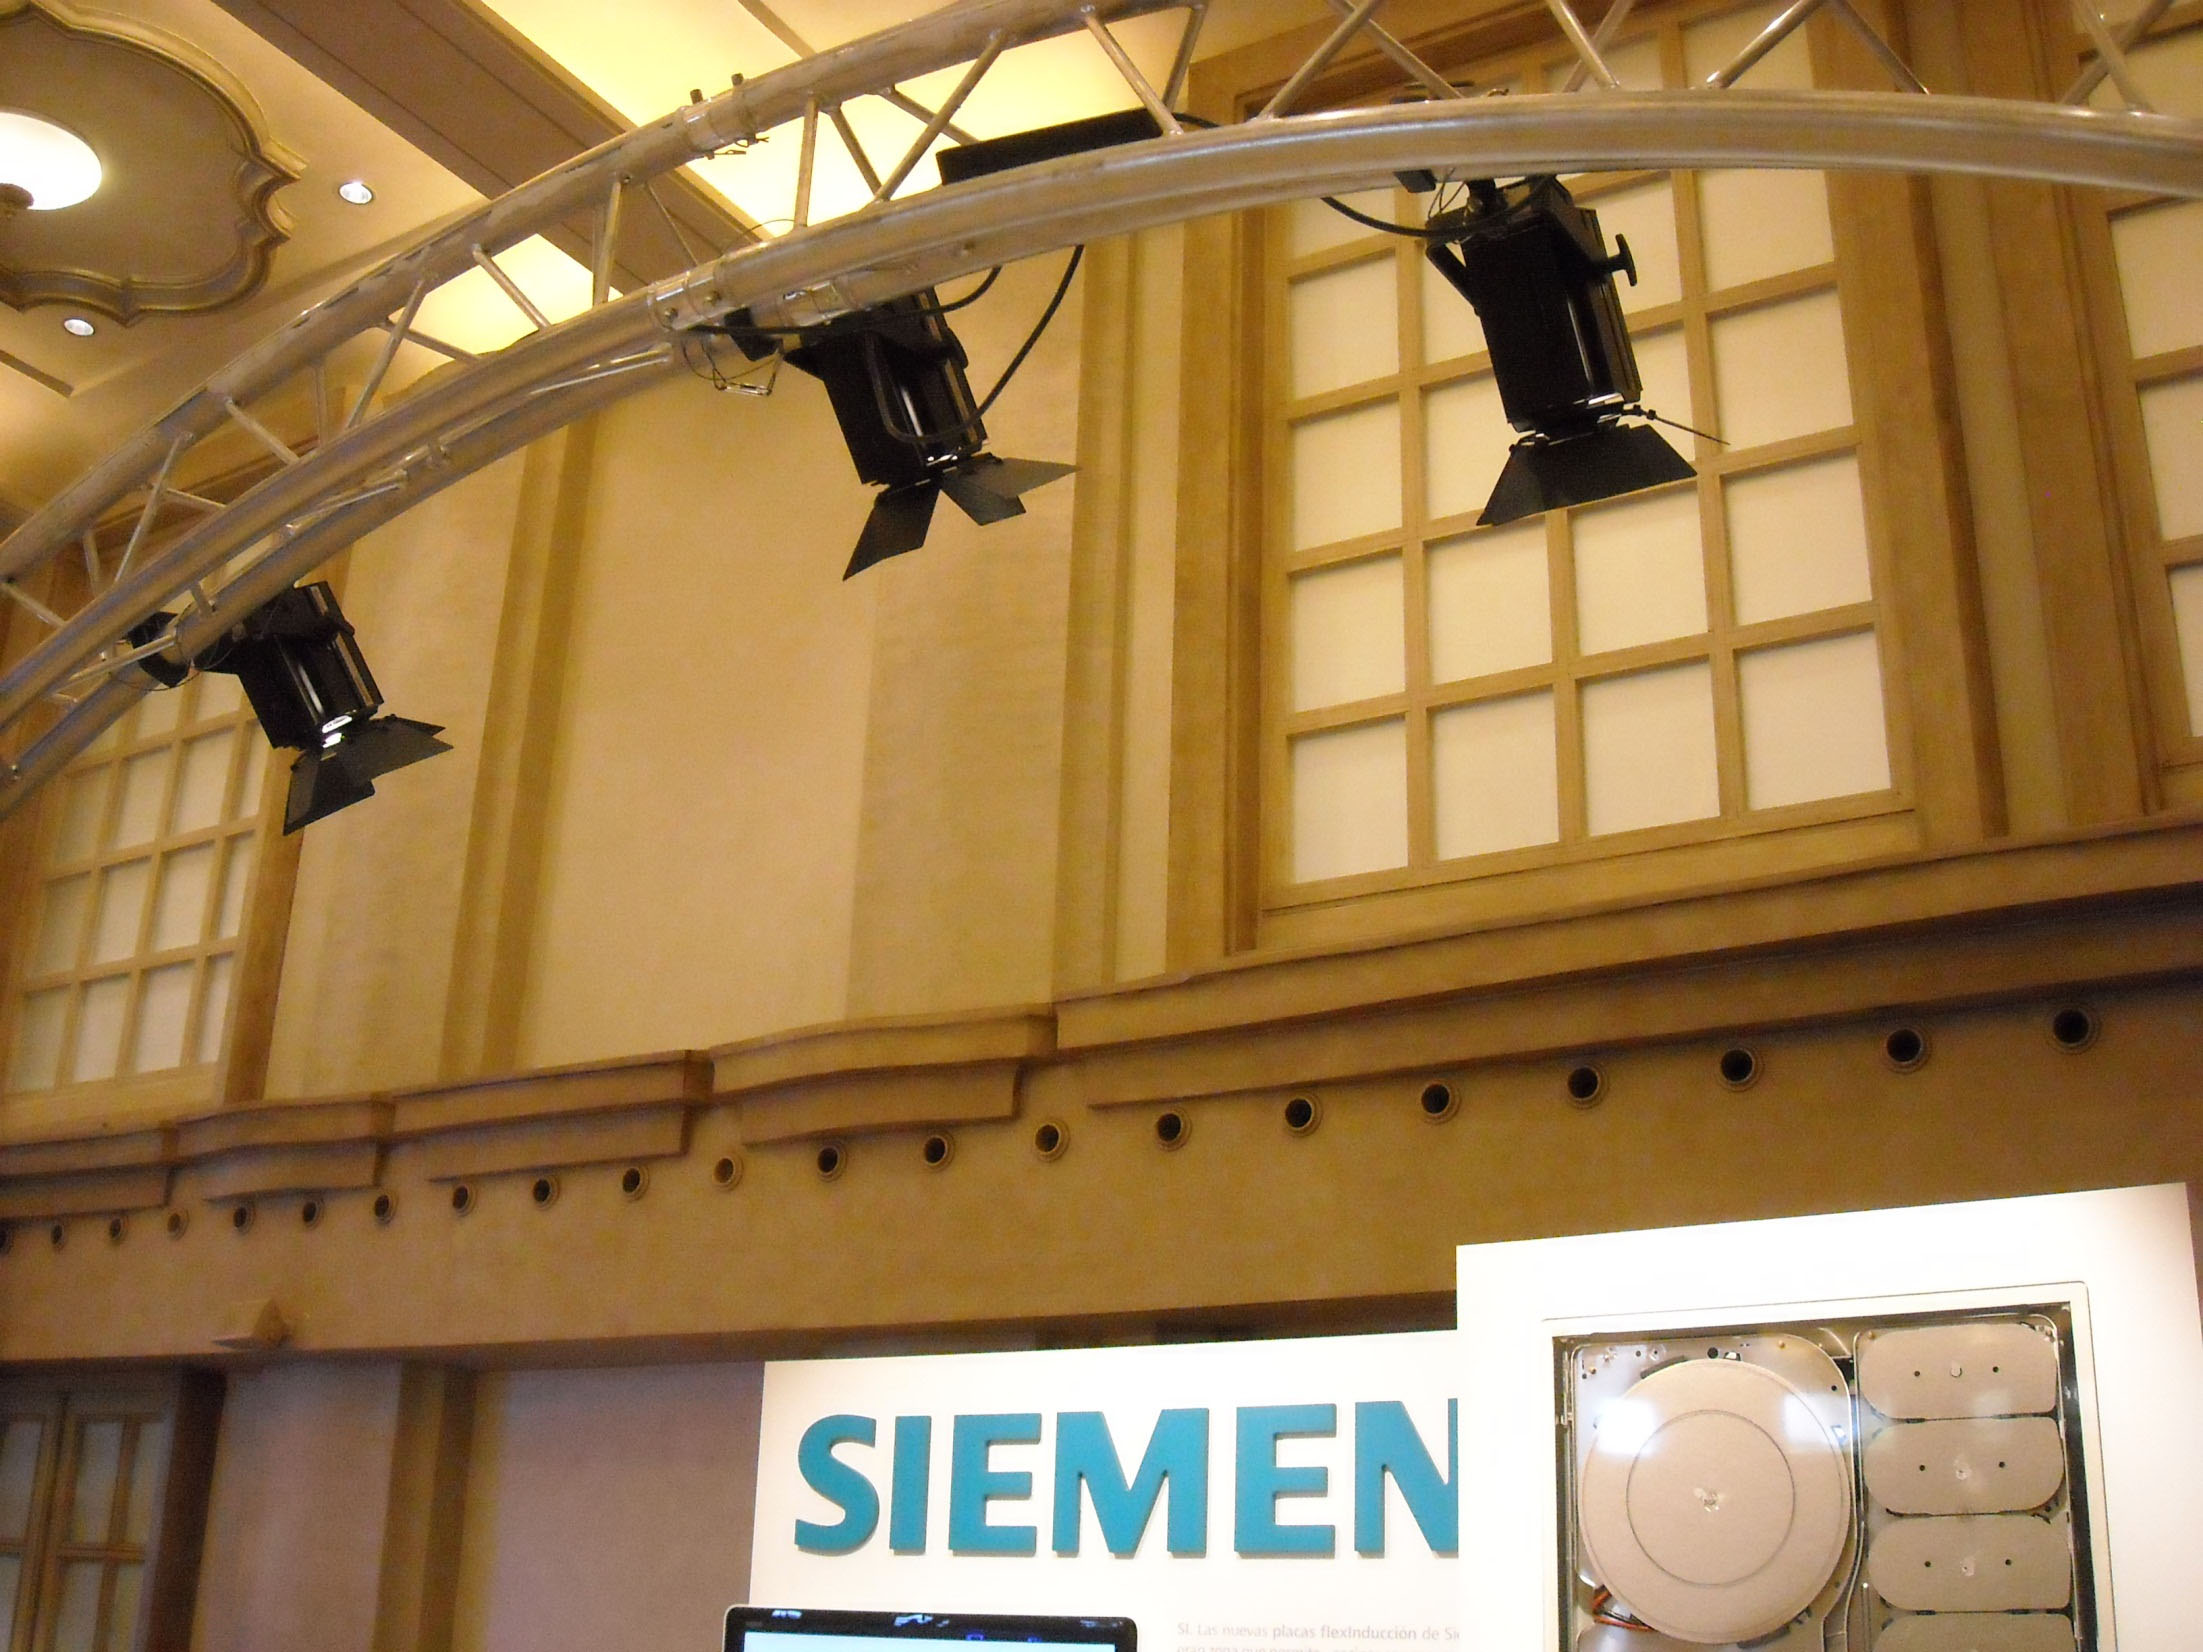 Showroom for a simposium of Siemens 2011 @ Madrid (Spain)